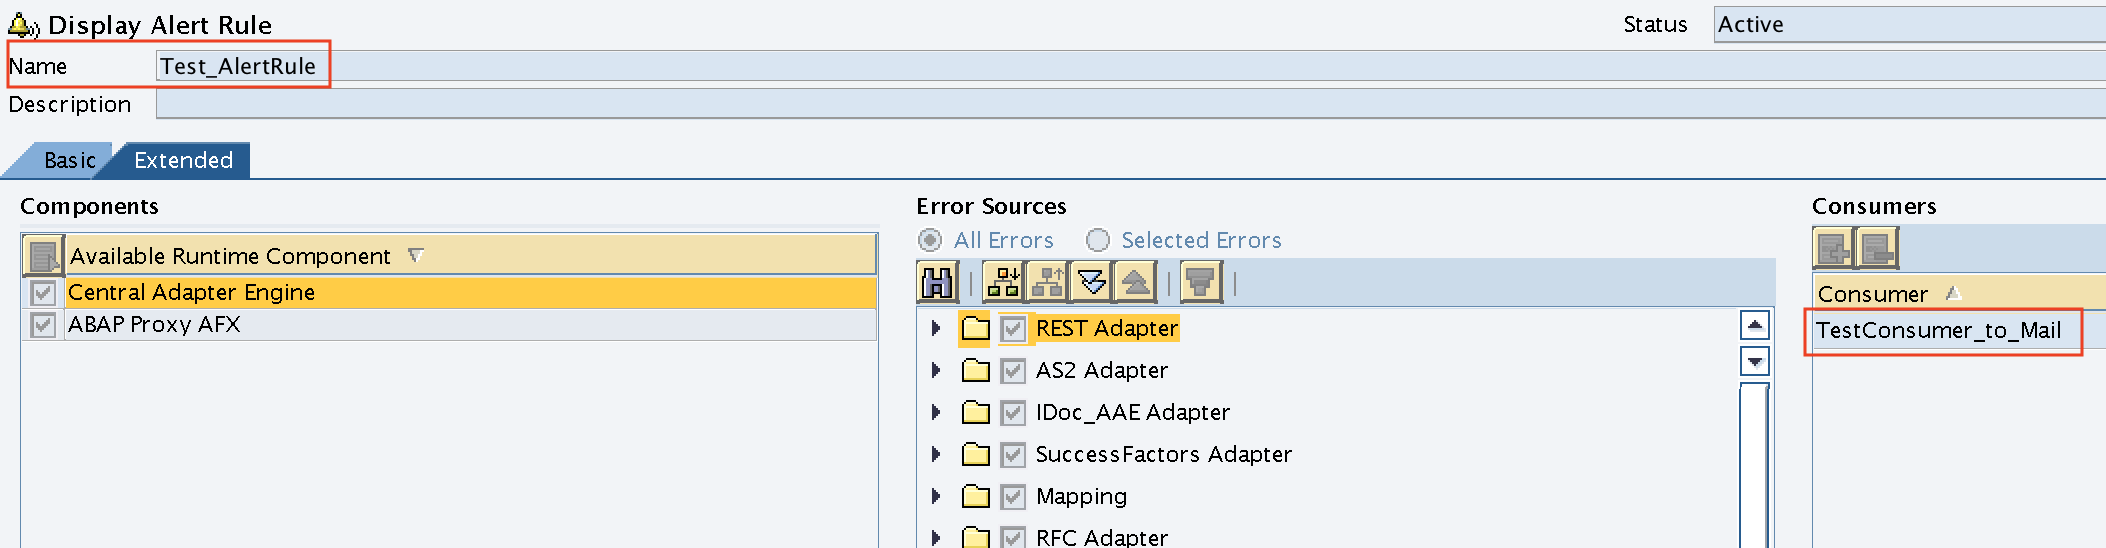 Validate if Alert Consumer is assigned to Alert Rule in Integration Directory